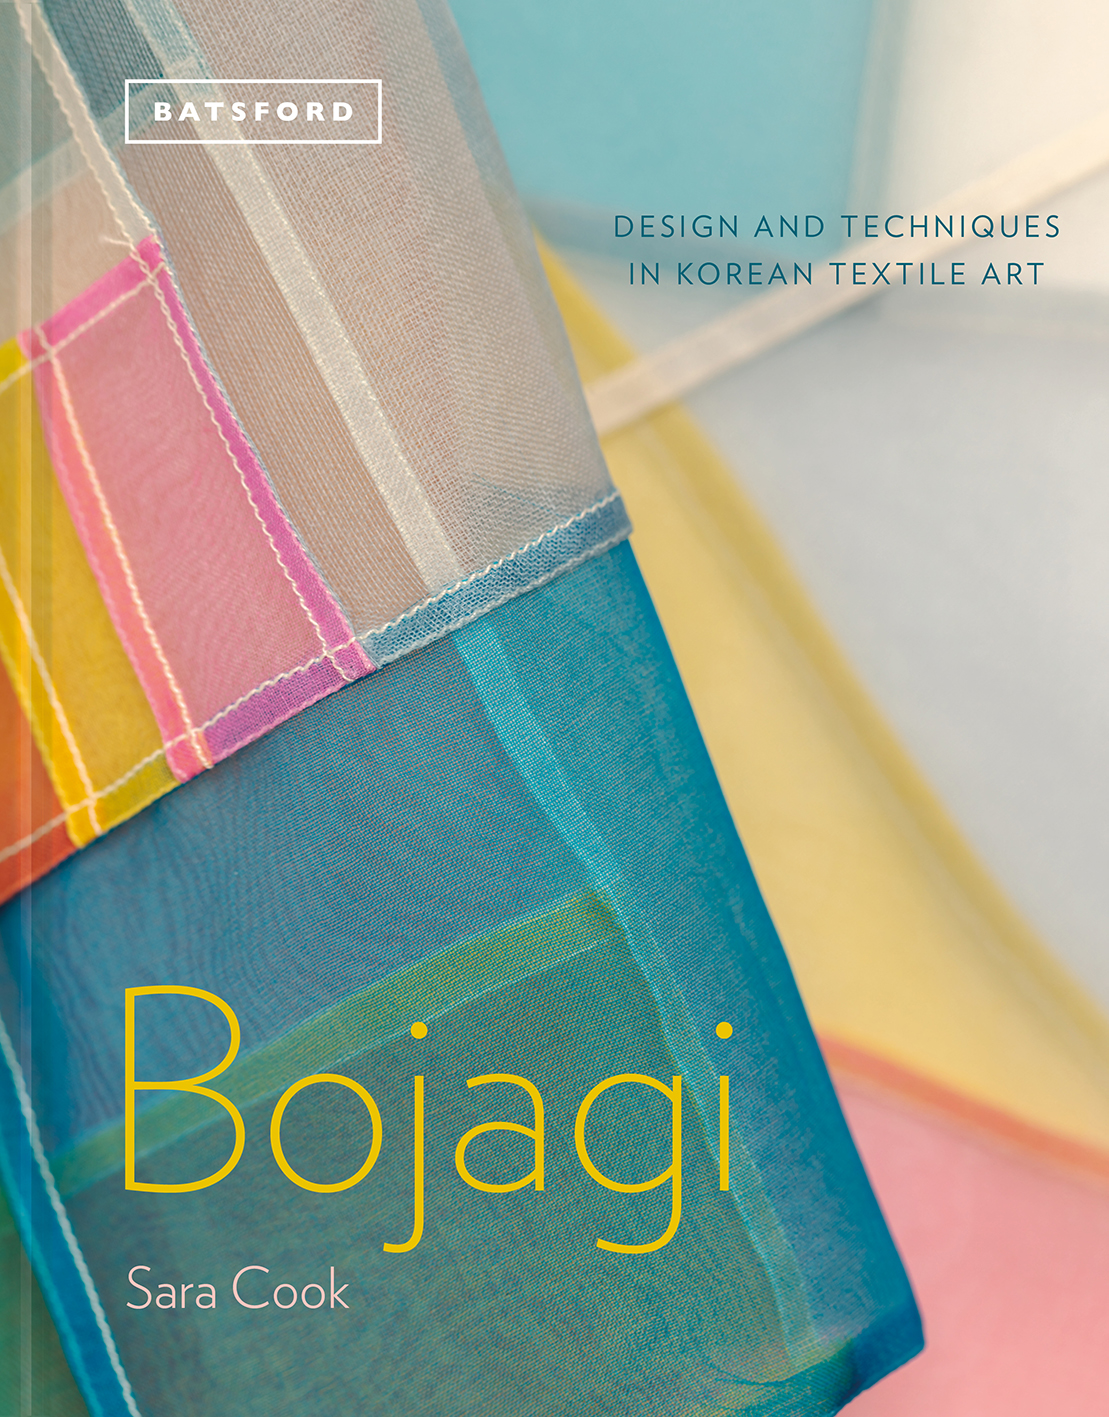 Bojagi – Korean Textile Art